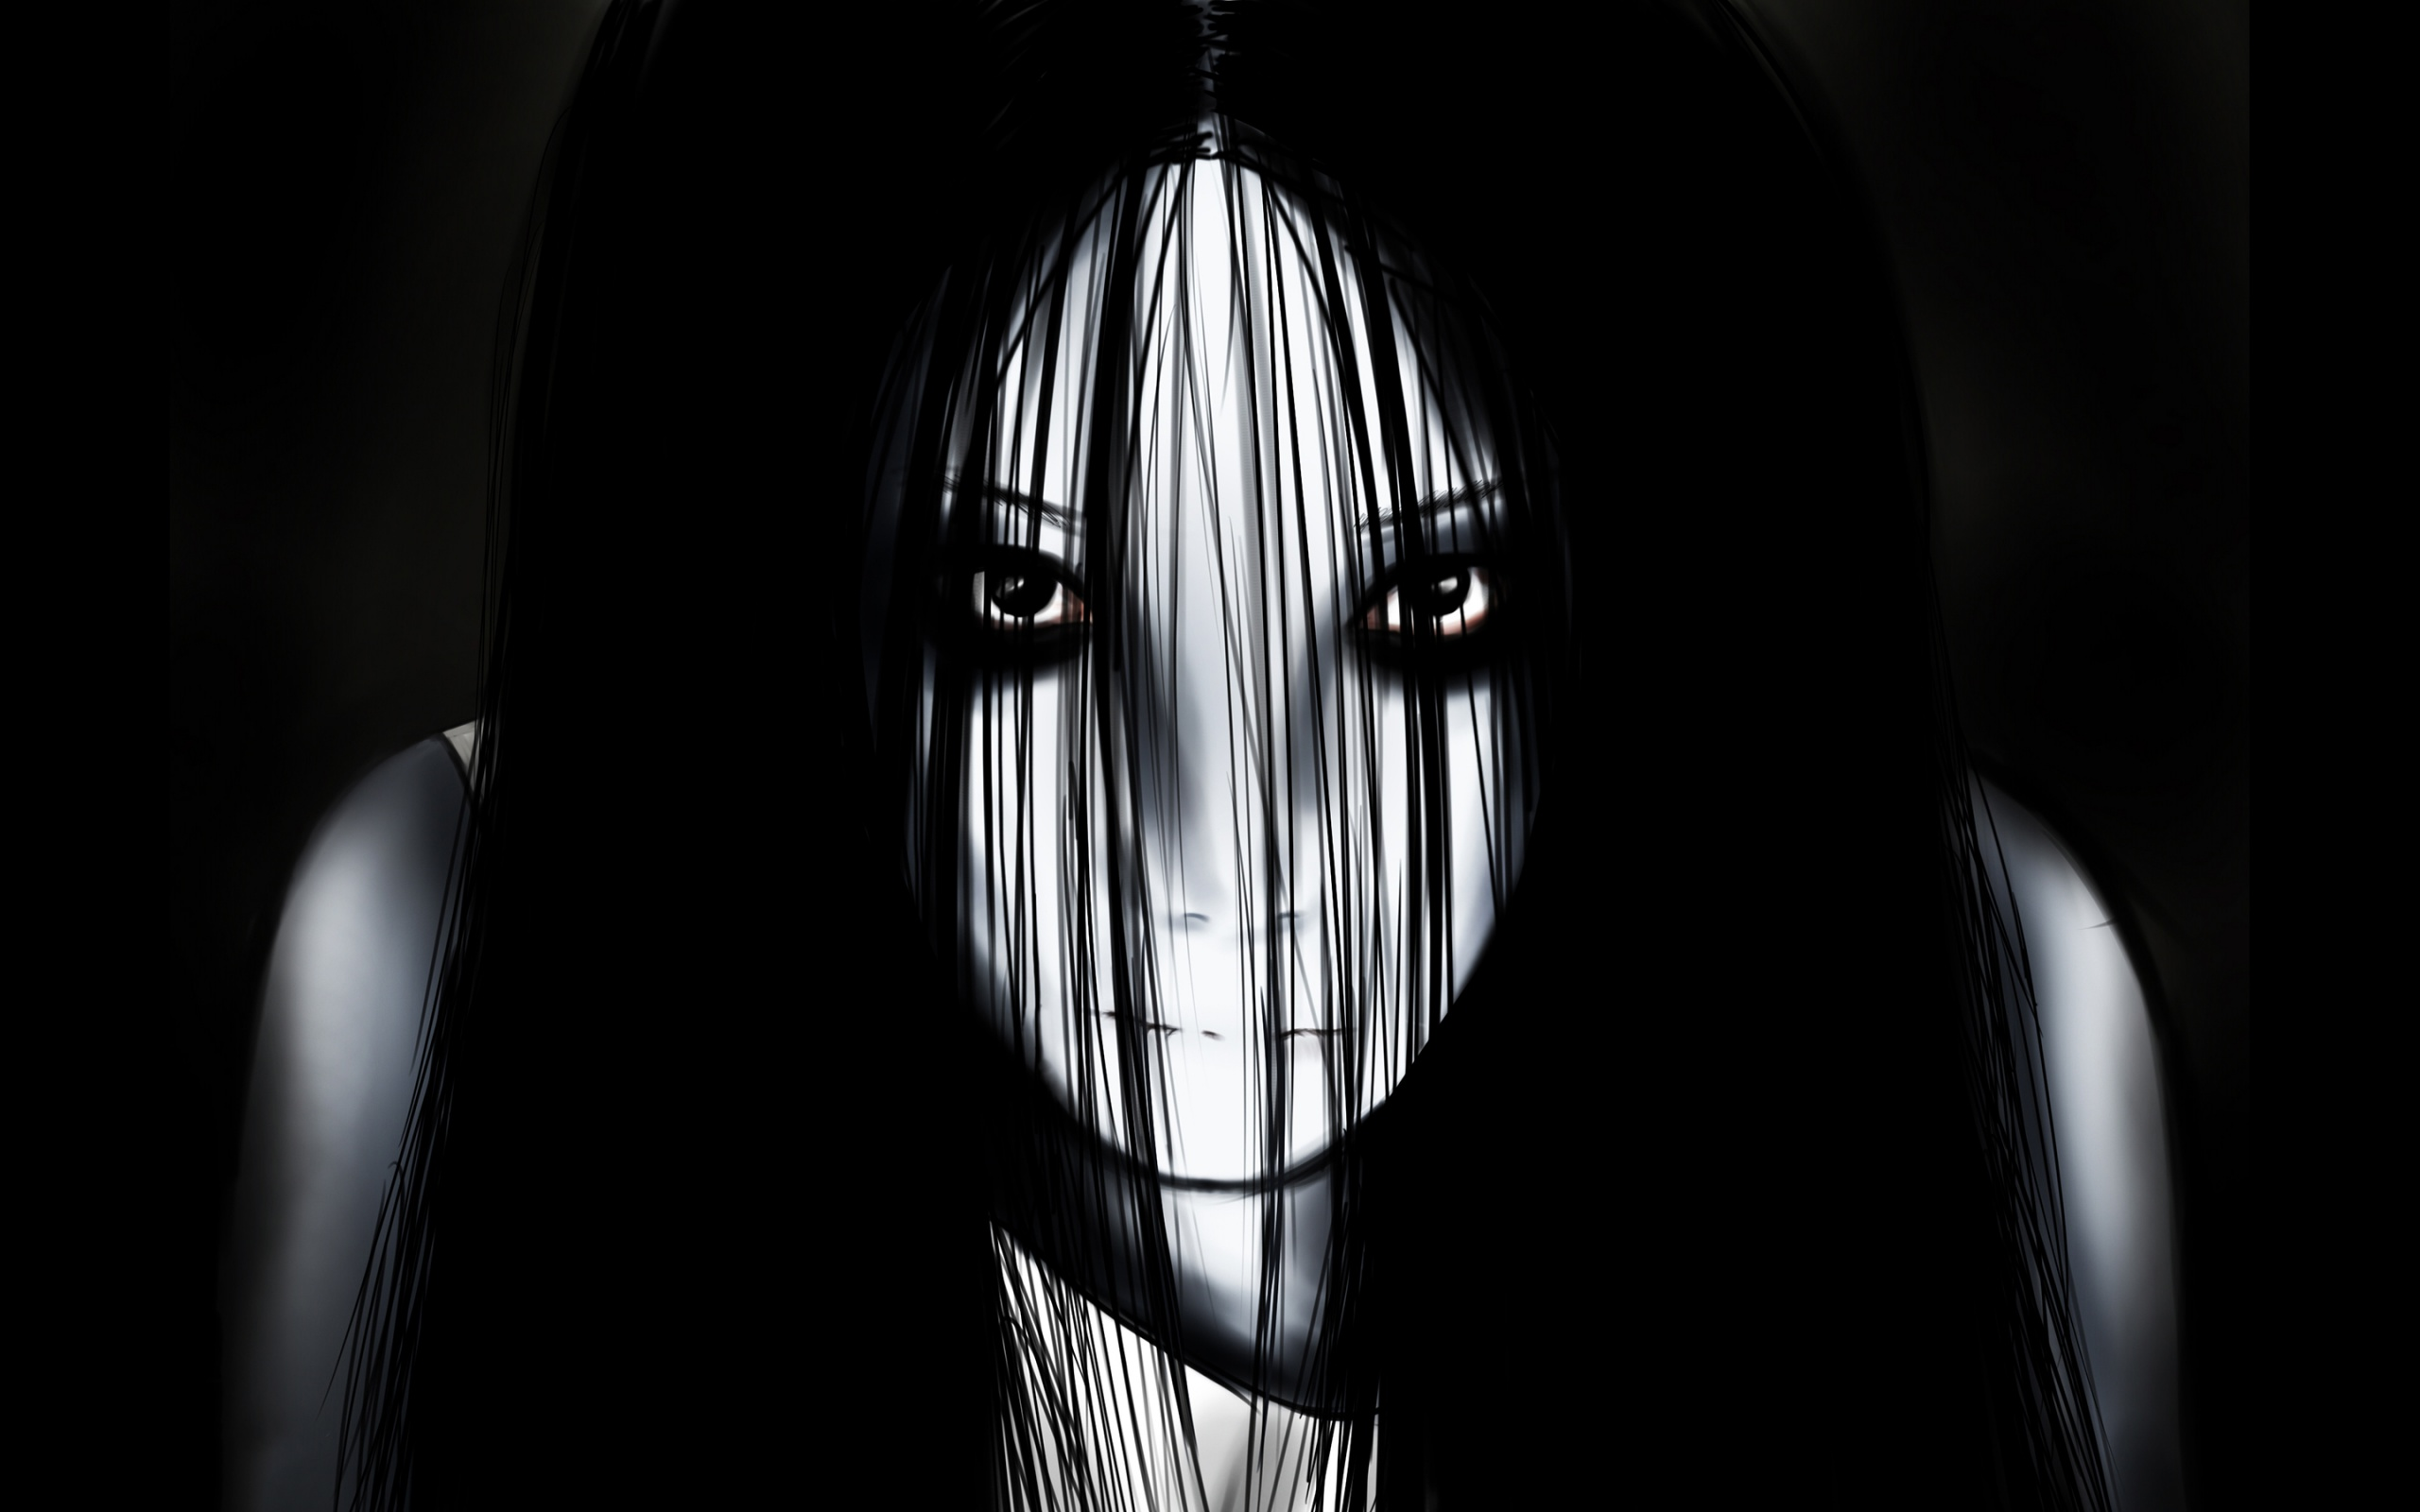 the-grudge-art-2560x1600